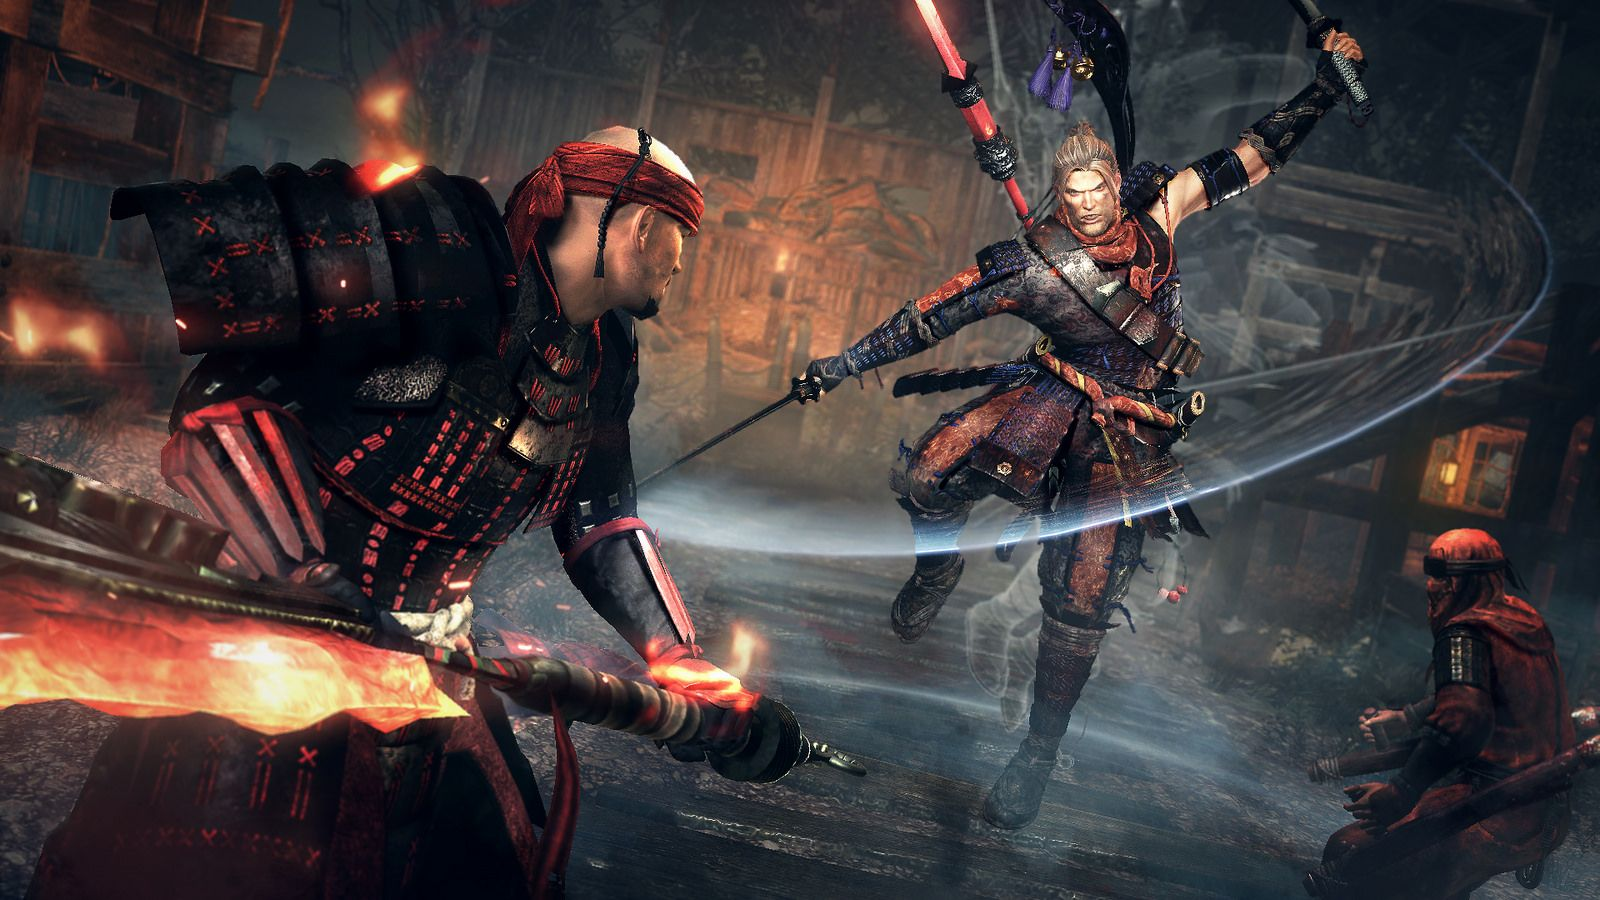 Nioh: Bloodsheds End Out Today on PS4 #Playstation4 #PS4 #Sony